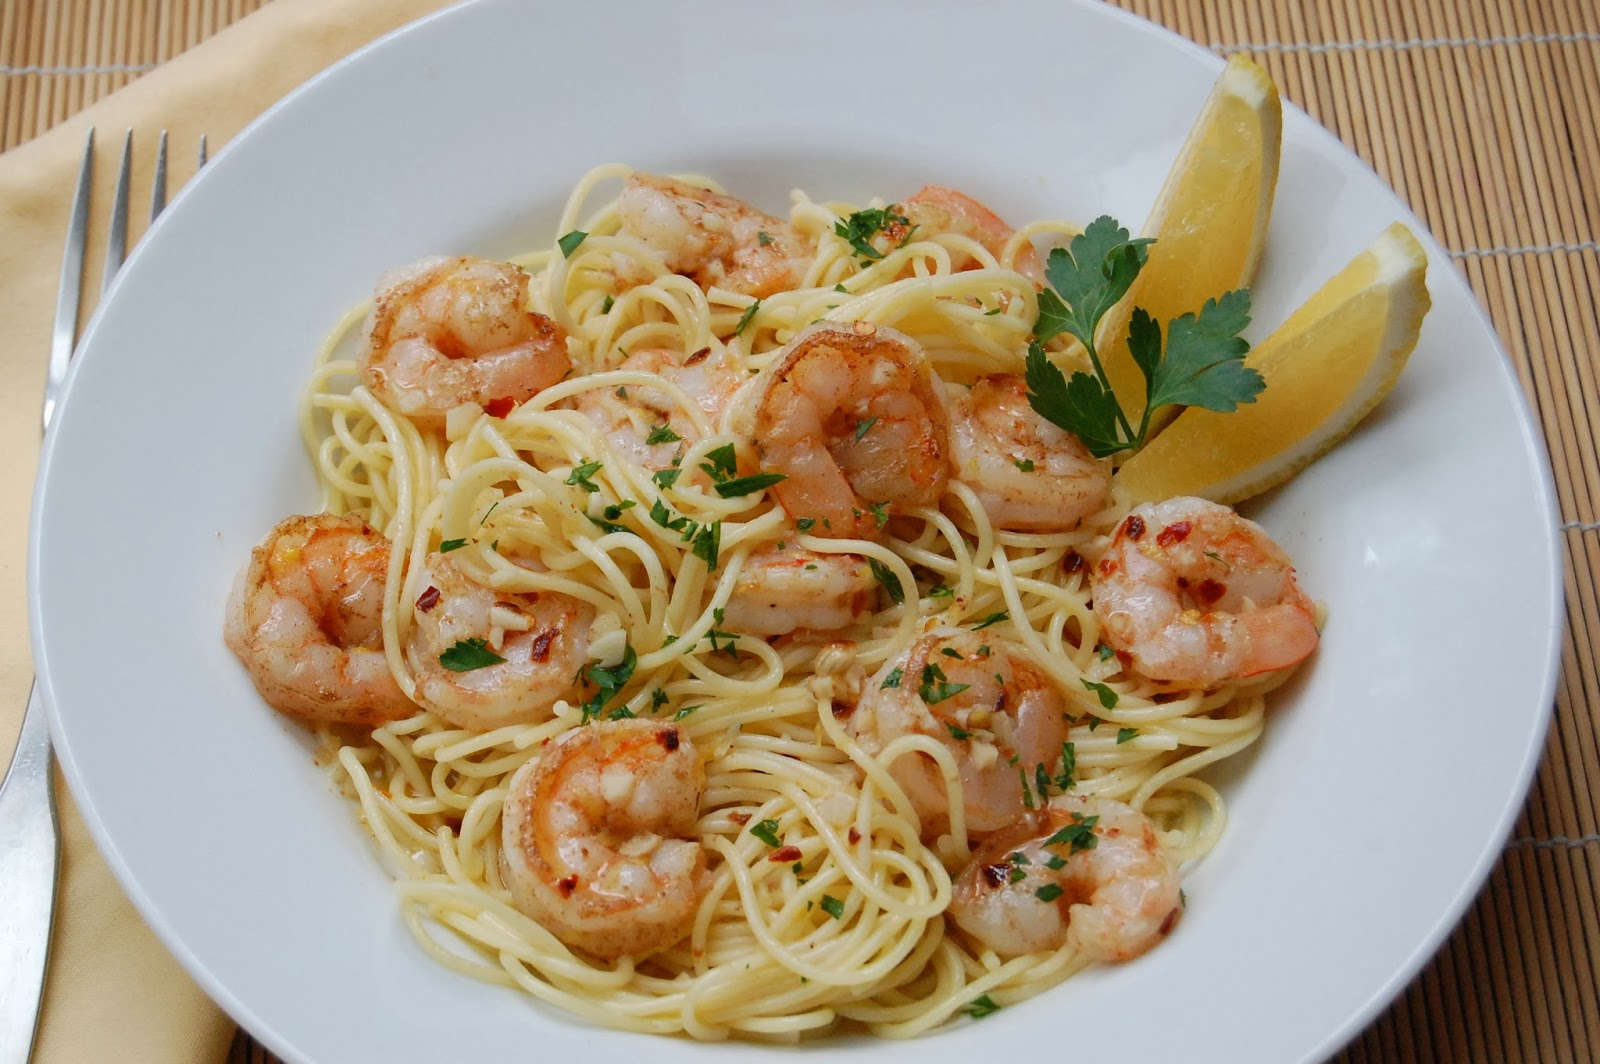 kathy kingsley: Garlic Lemon Shrimp with Pasta